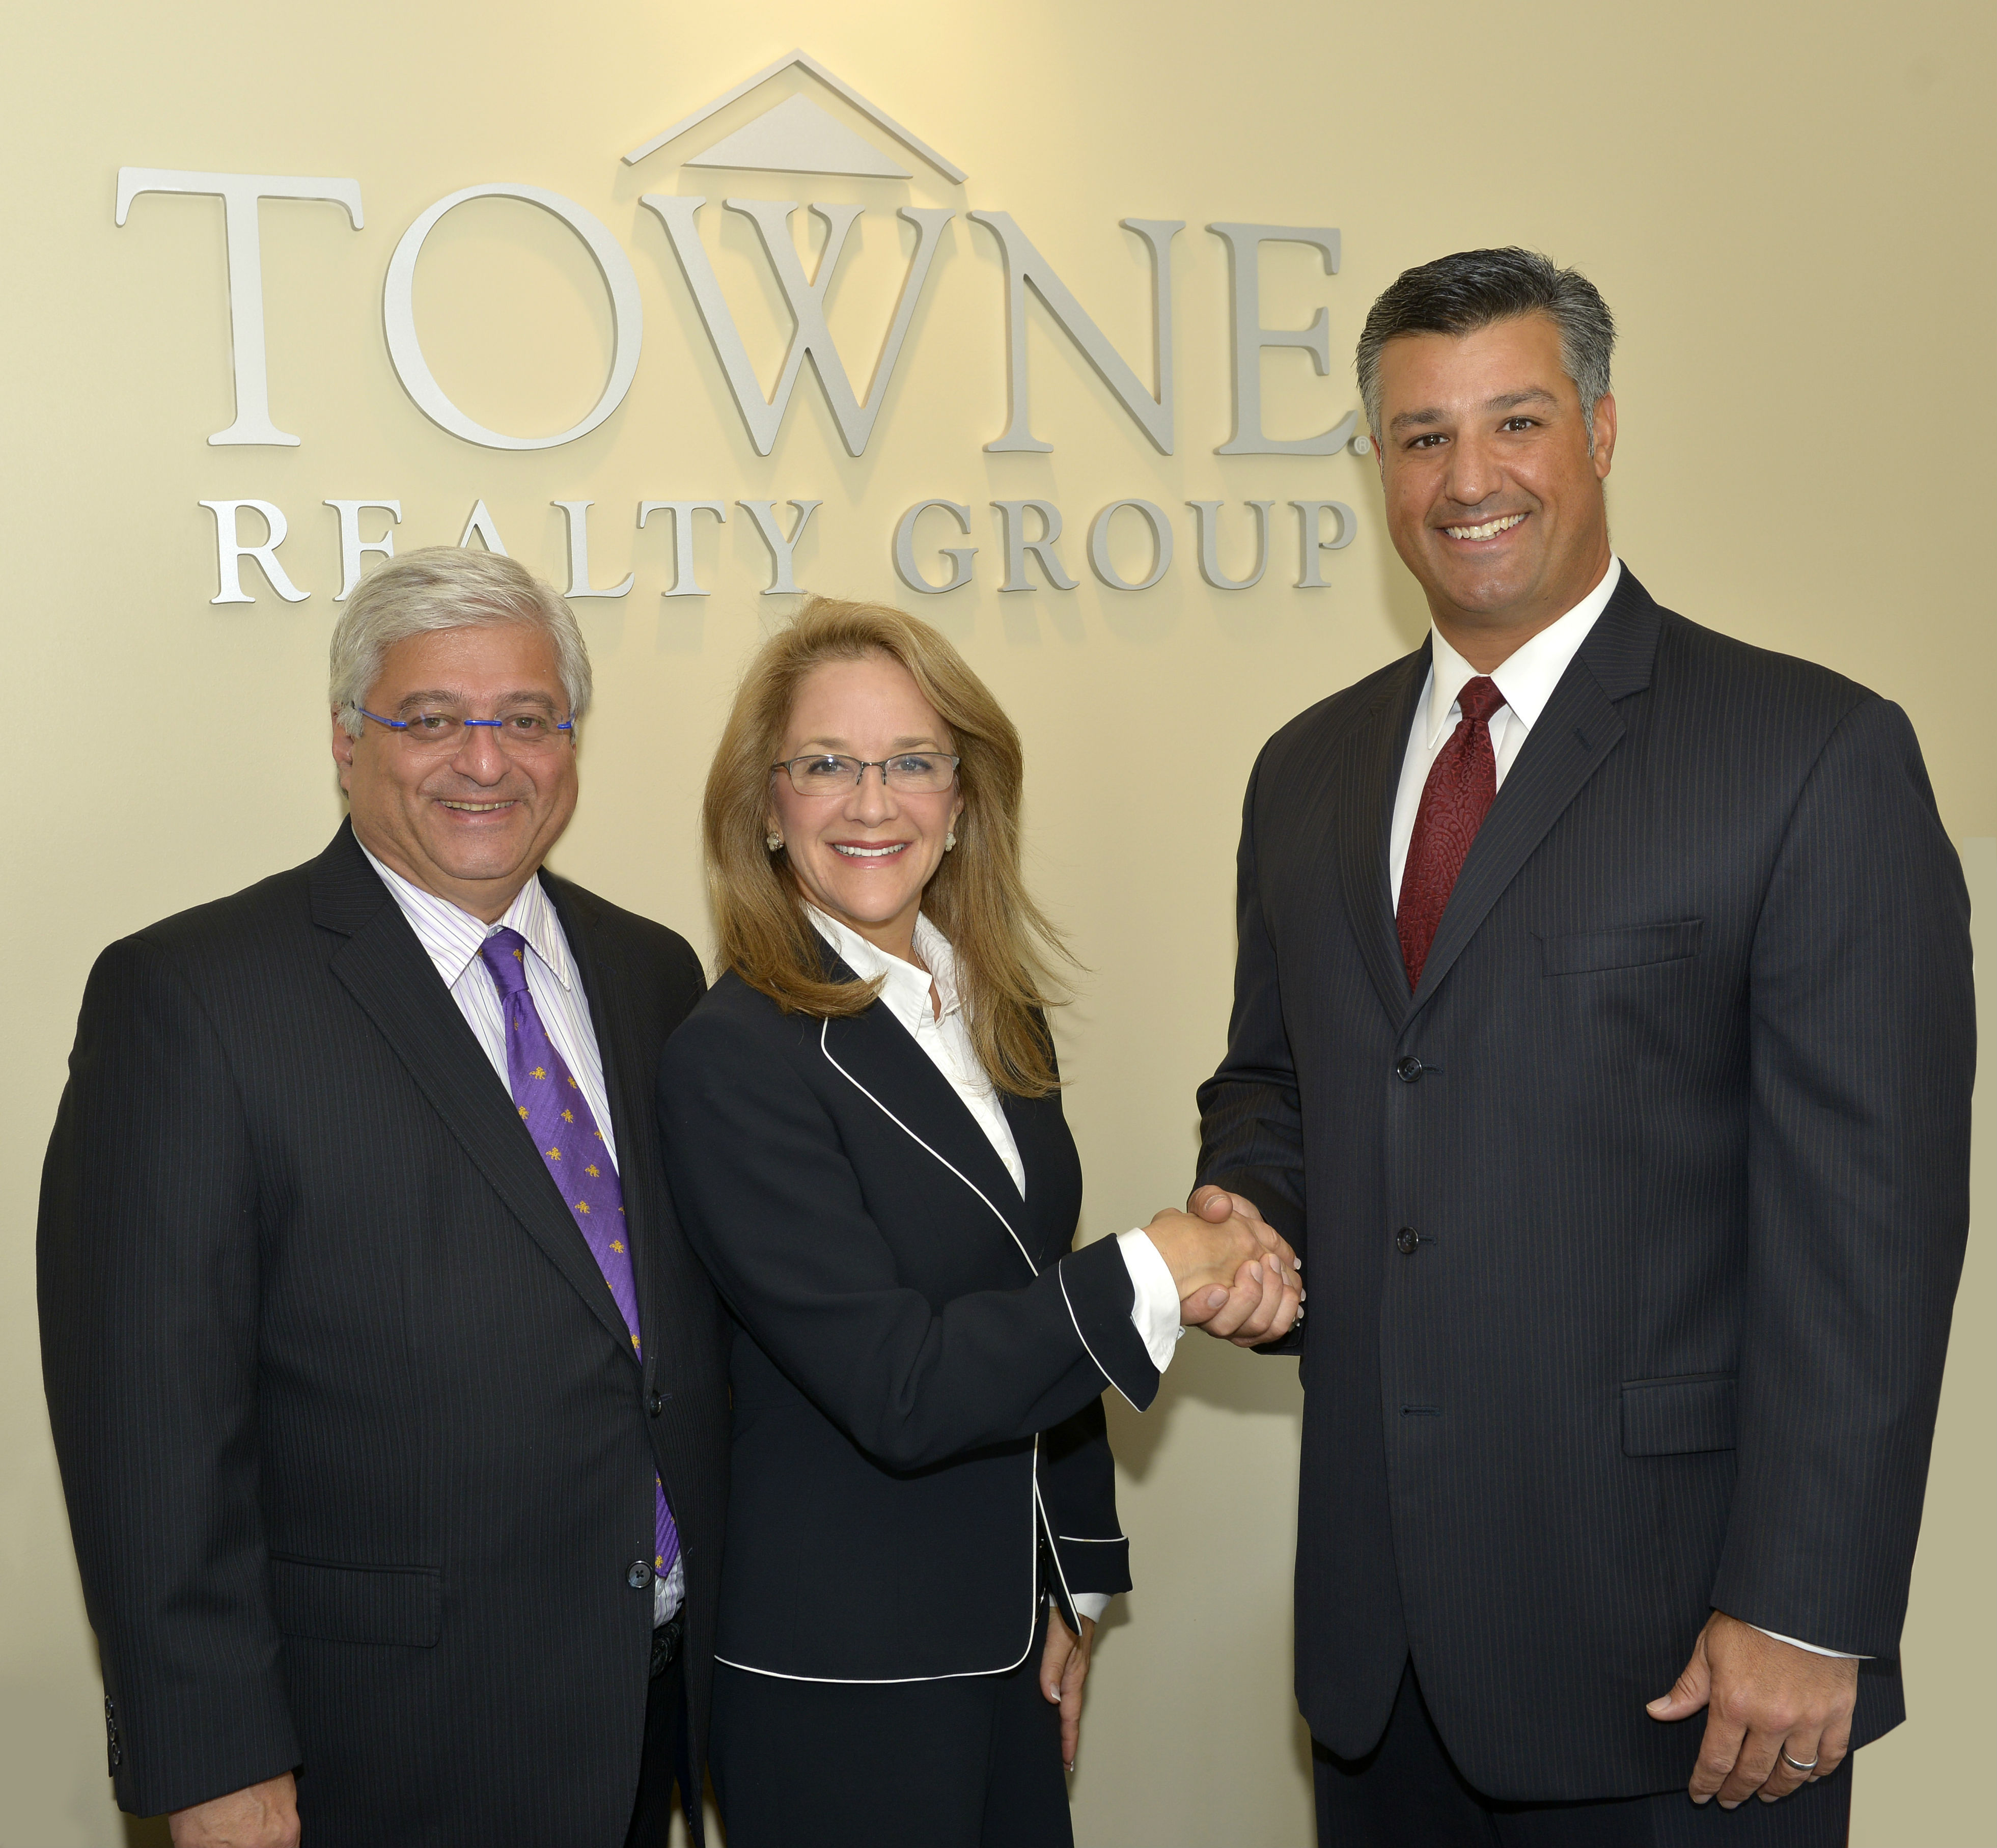 83d3129083a2f7150add_Dan_Karen_Tom_W_in_front_of_TOWNE_sign_2013.jpg